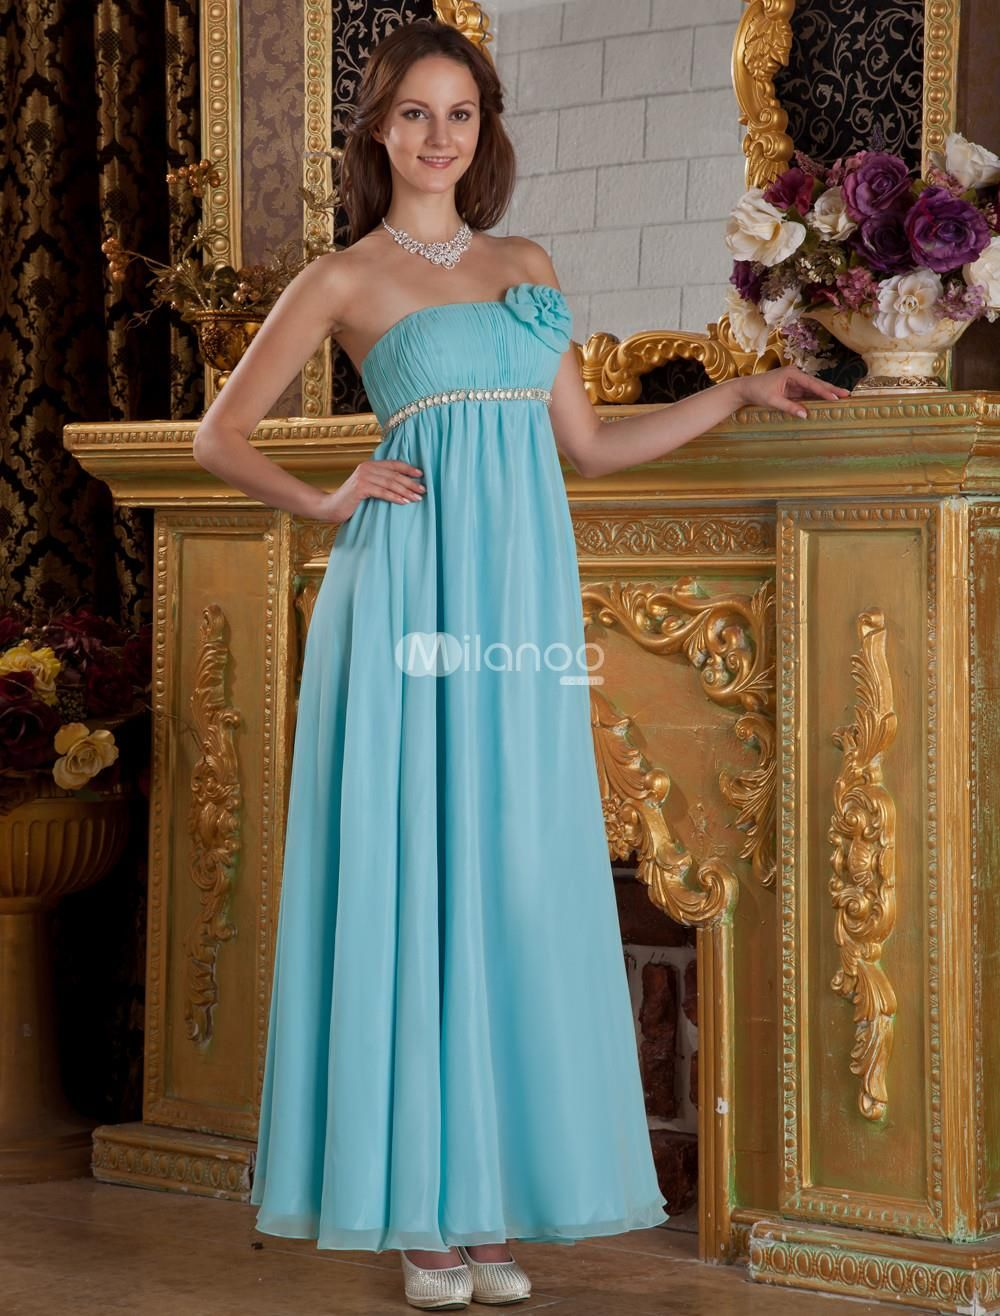 Magnificent Masquerade Dresses And Masks For Prom Pictures ...